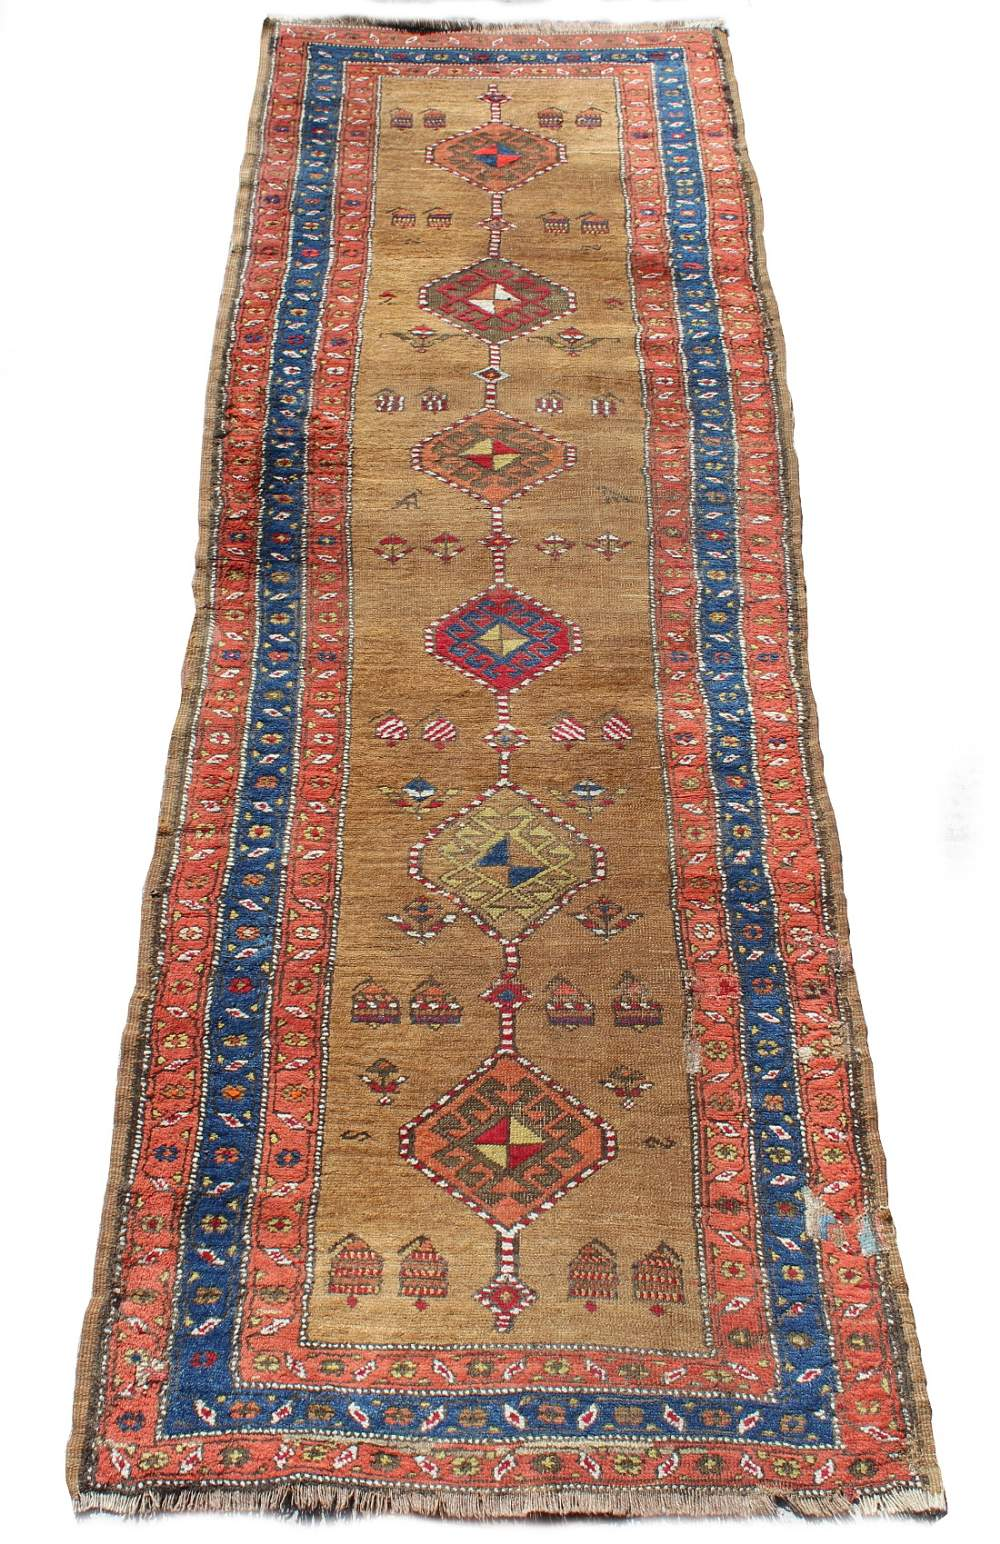 Lot 57 - Property of a deceased estate - a late 19th / early 20th century antique Caucasian long rug, with